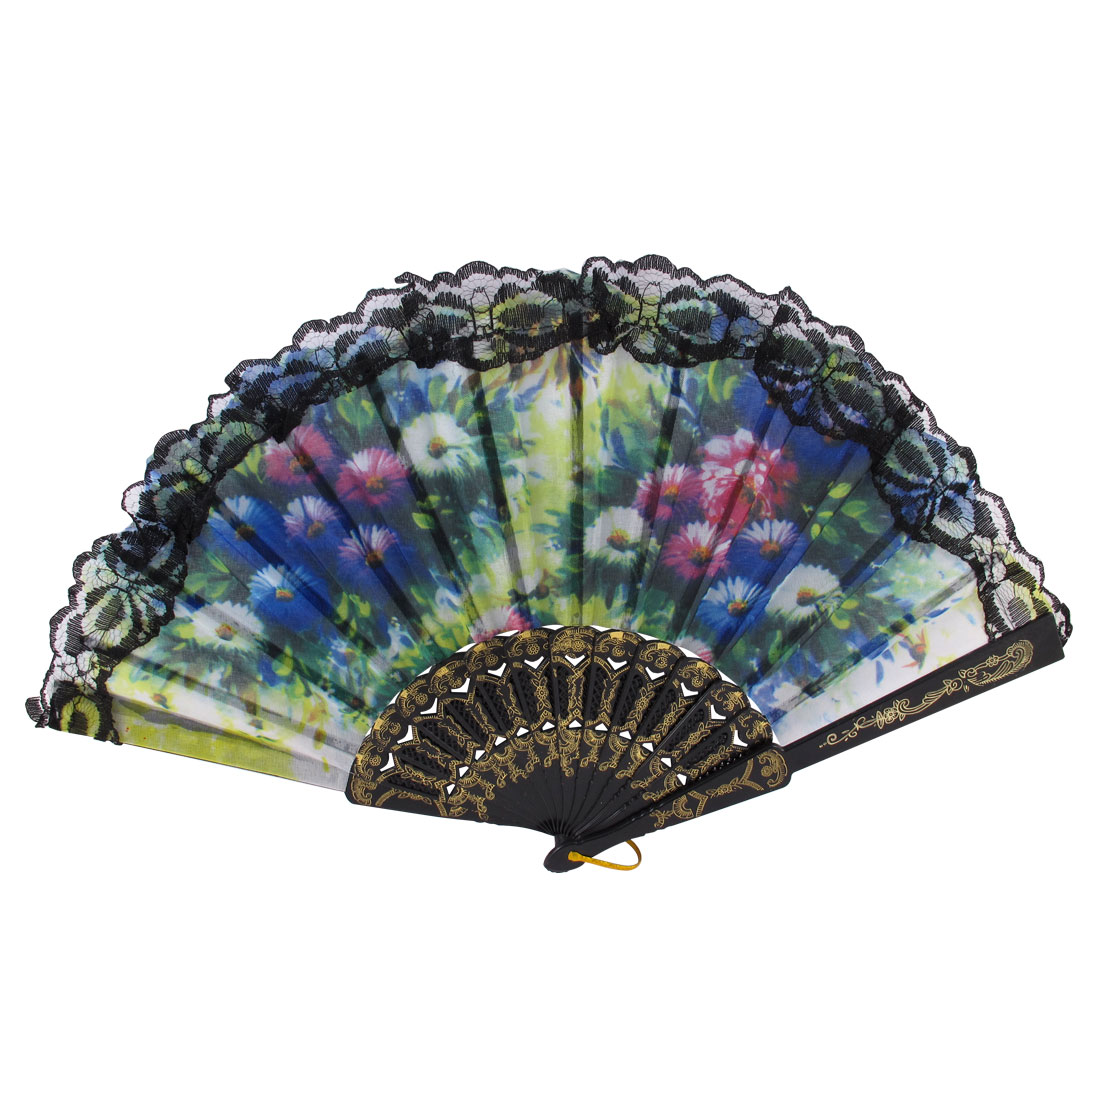 Carved Ribs Chrysanthemum Printed Wavy Lace Edge Spanish Style Hand Fan Black Gold Tone